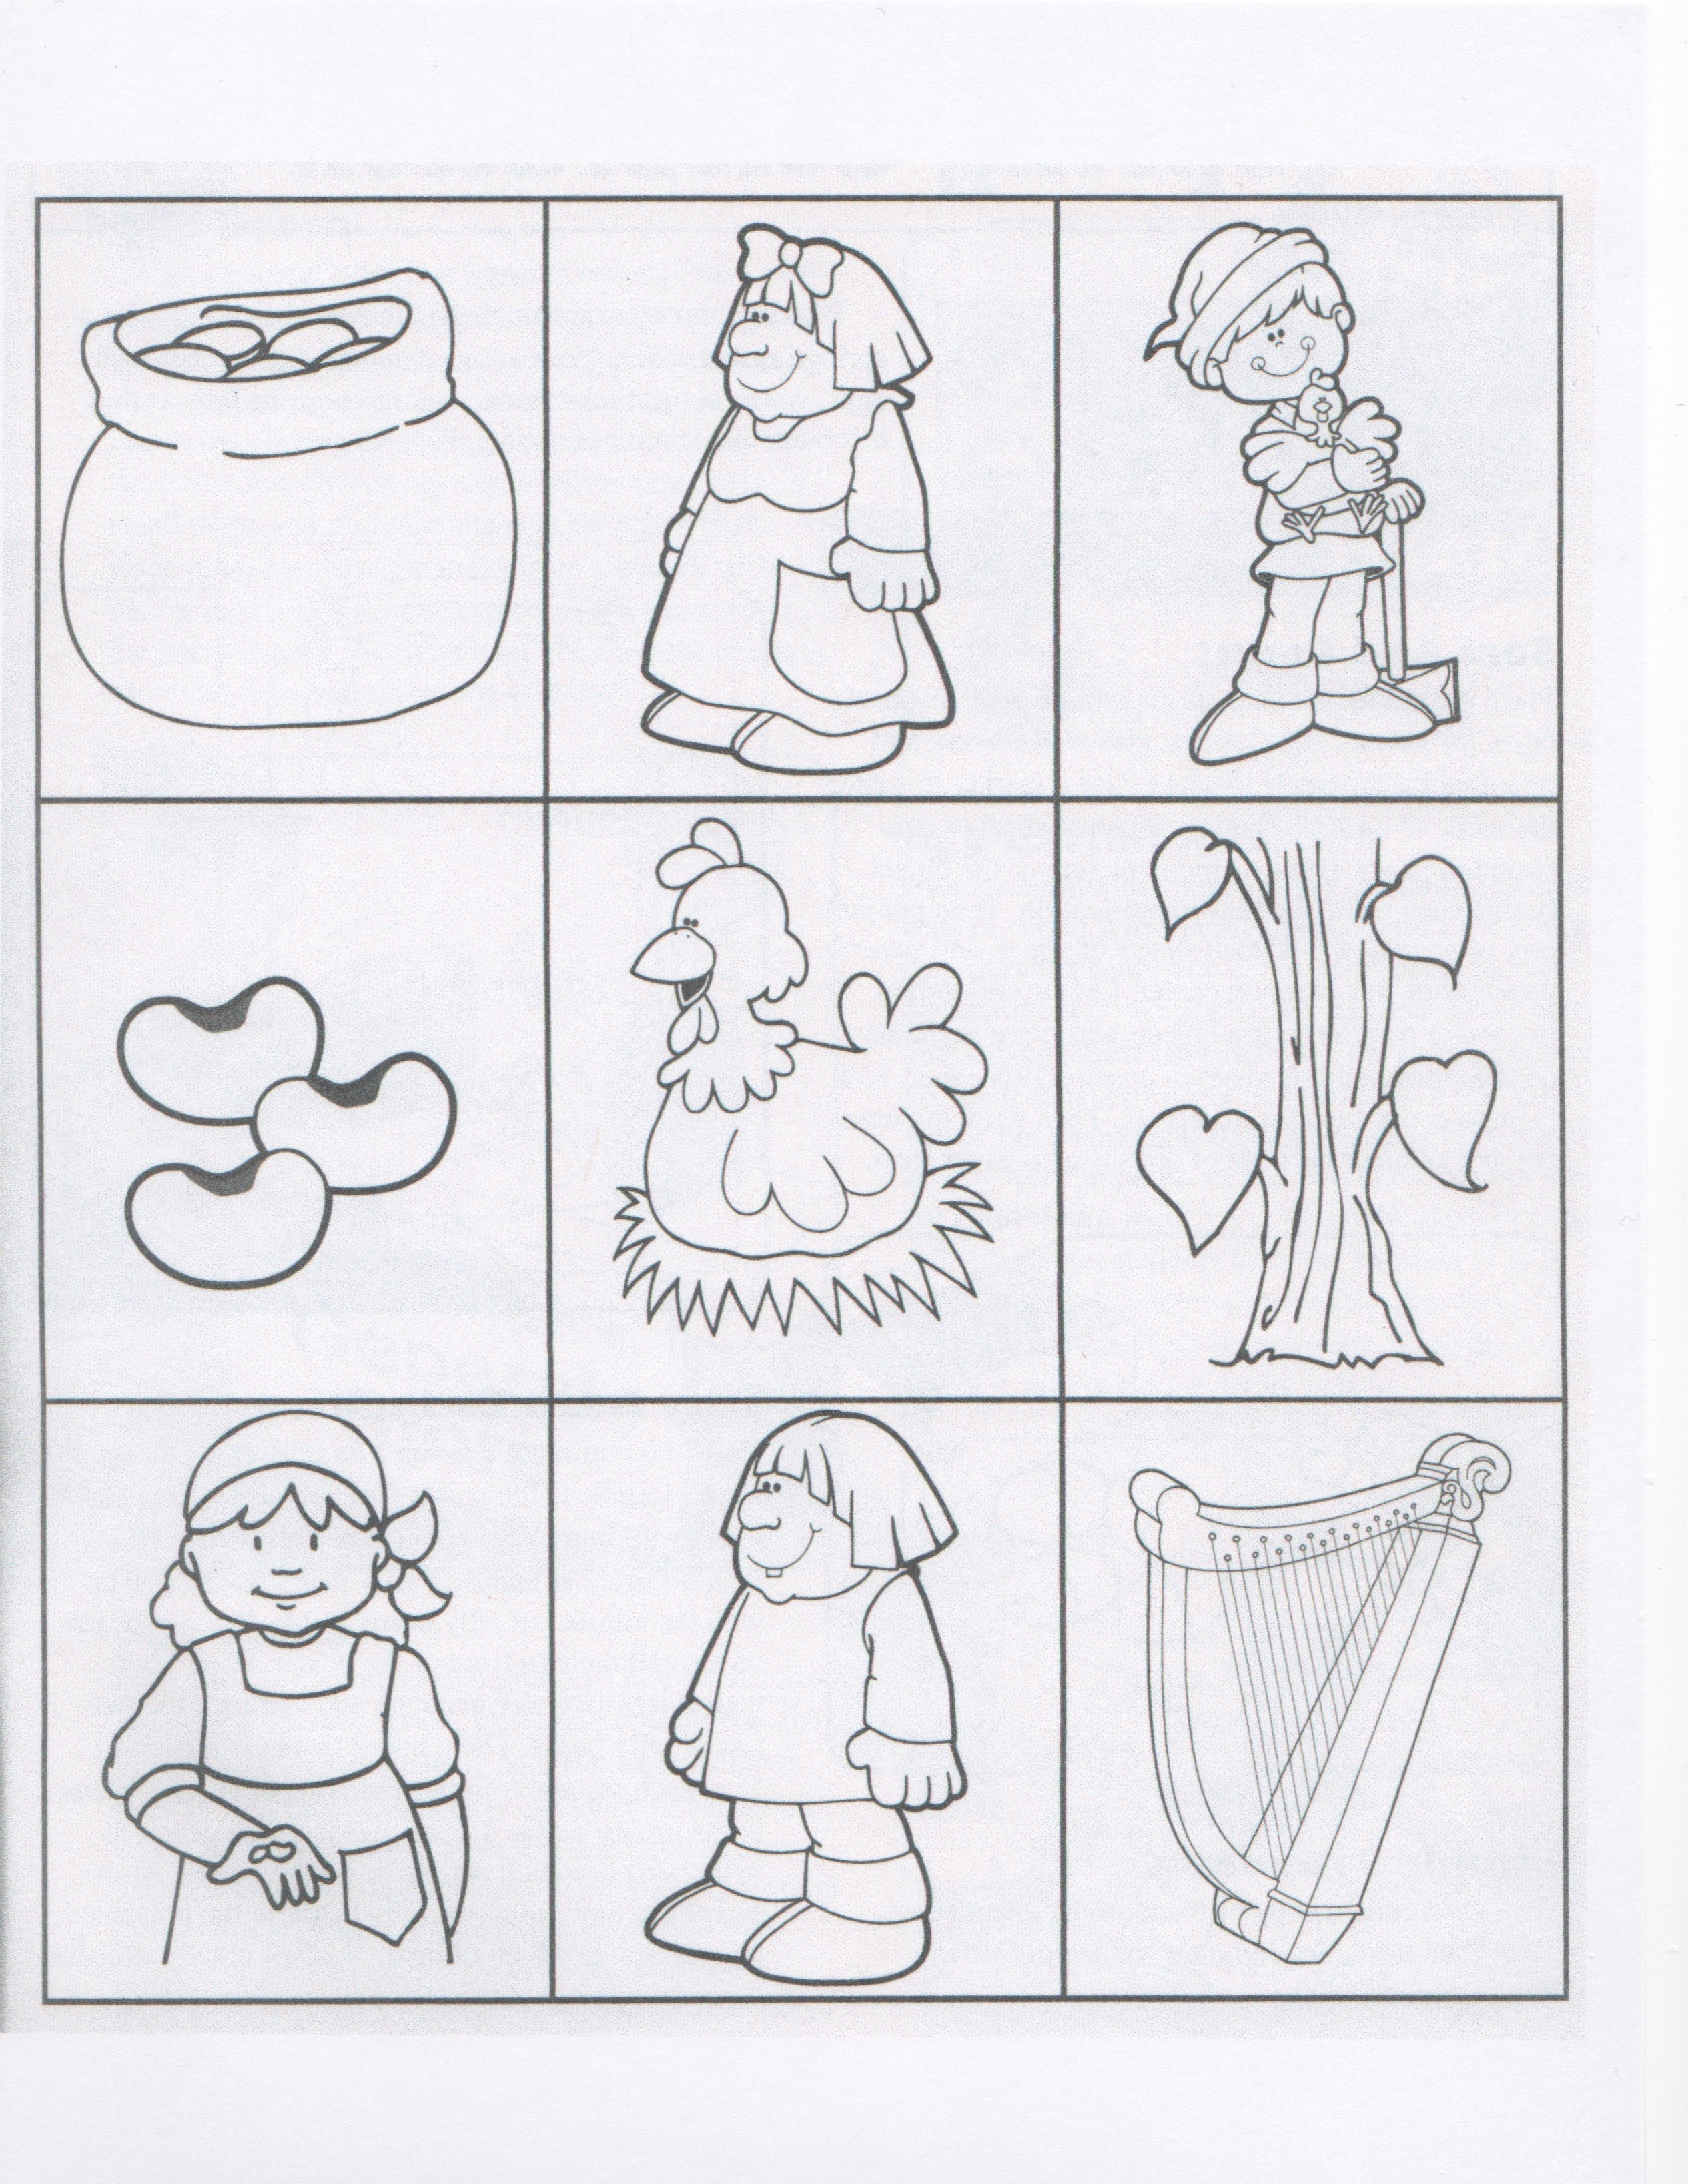 Jack and the beanstalk kindergarten nana for Cut out character template